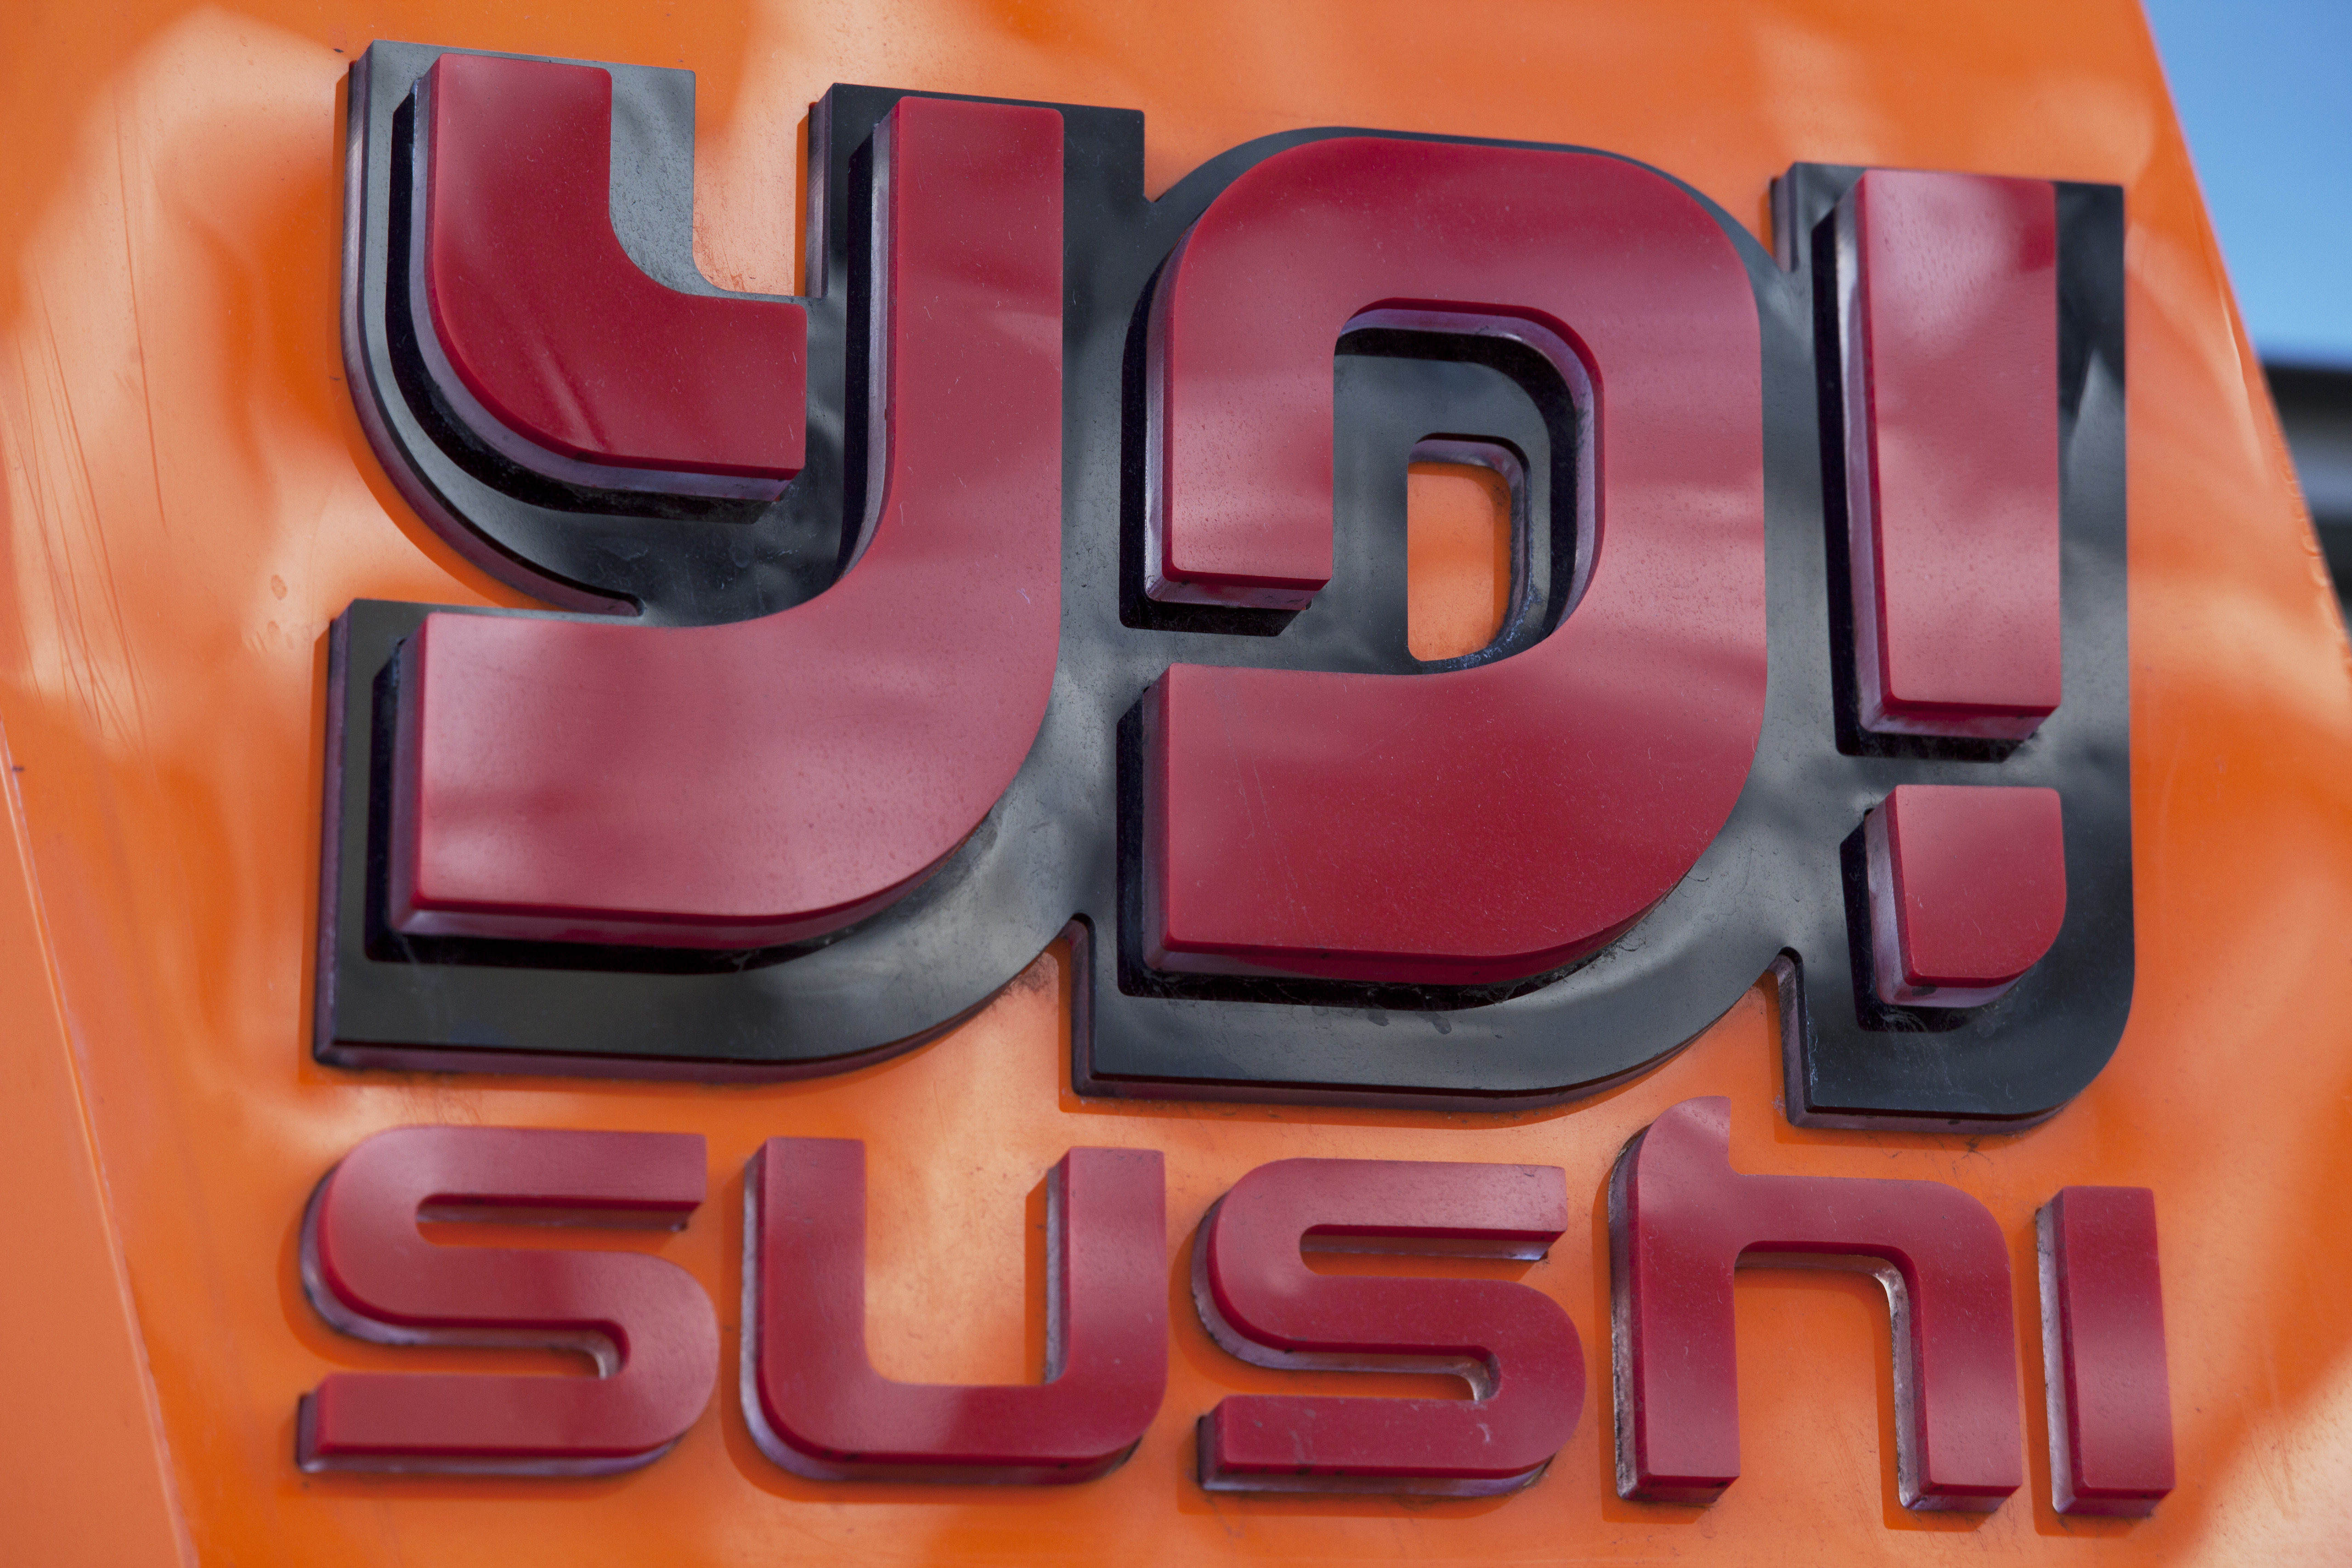 Sushi Chain Yo! Risks it All by Saying No! to Famous Conveyor Belt